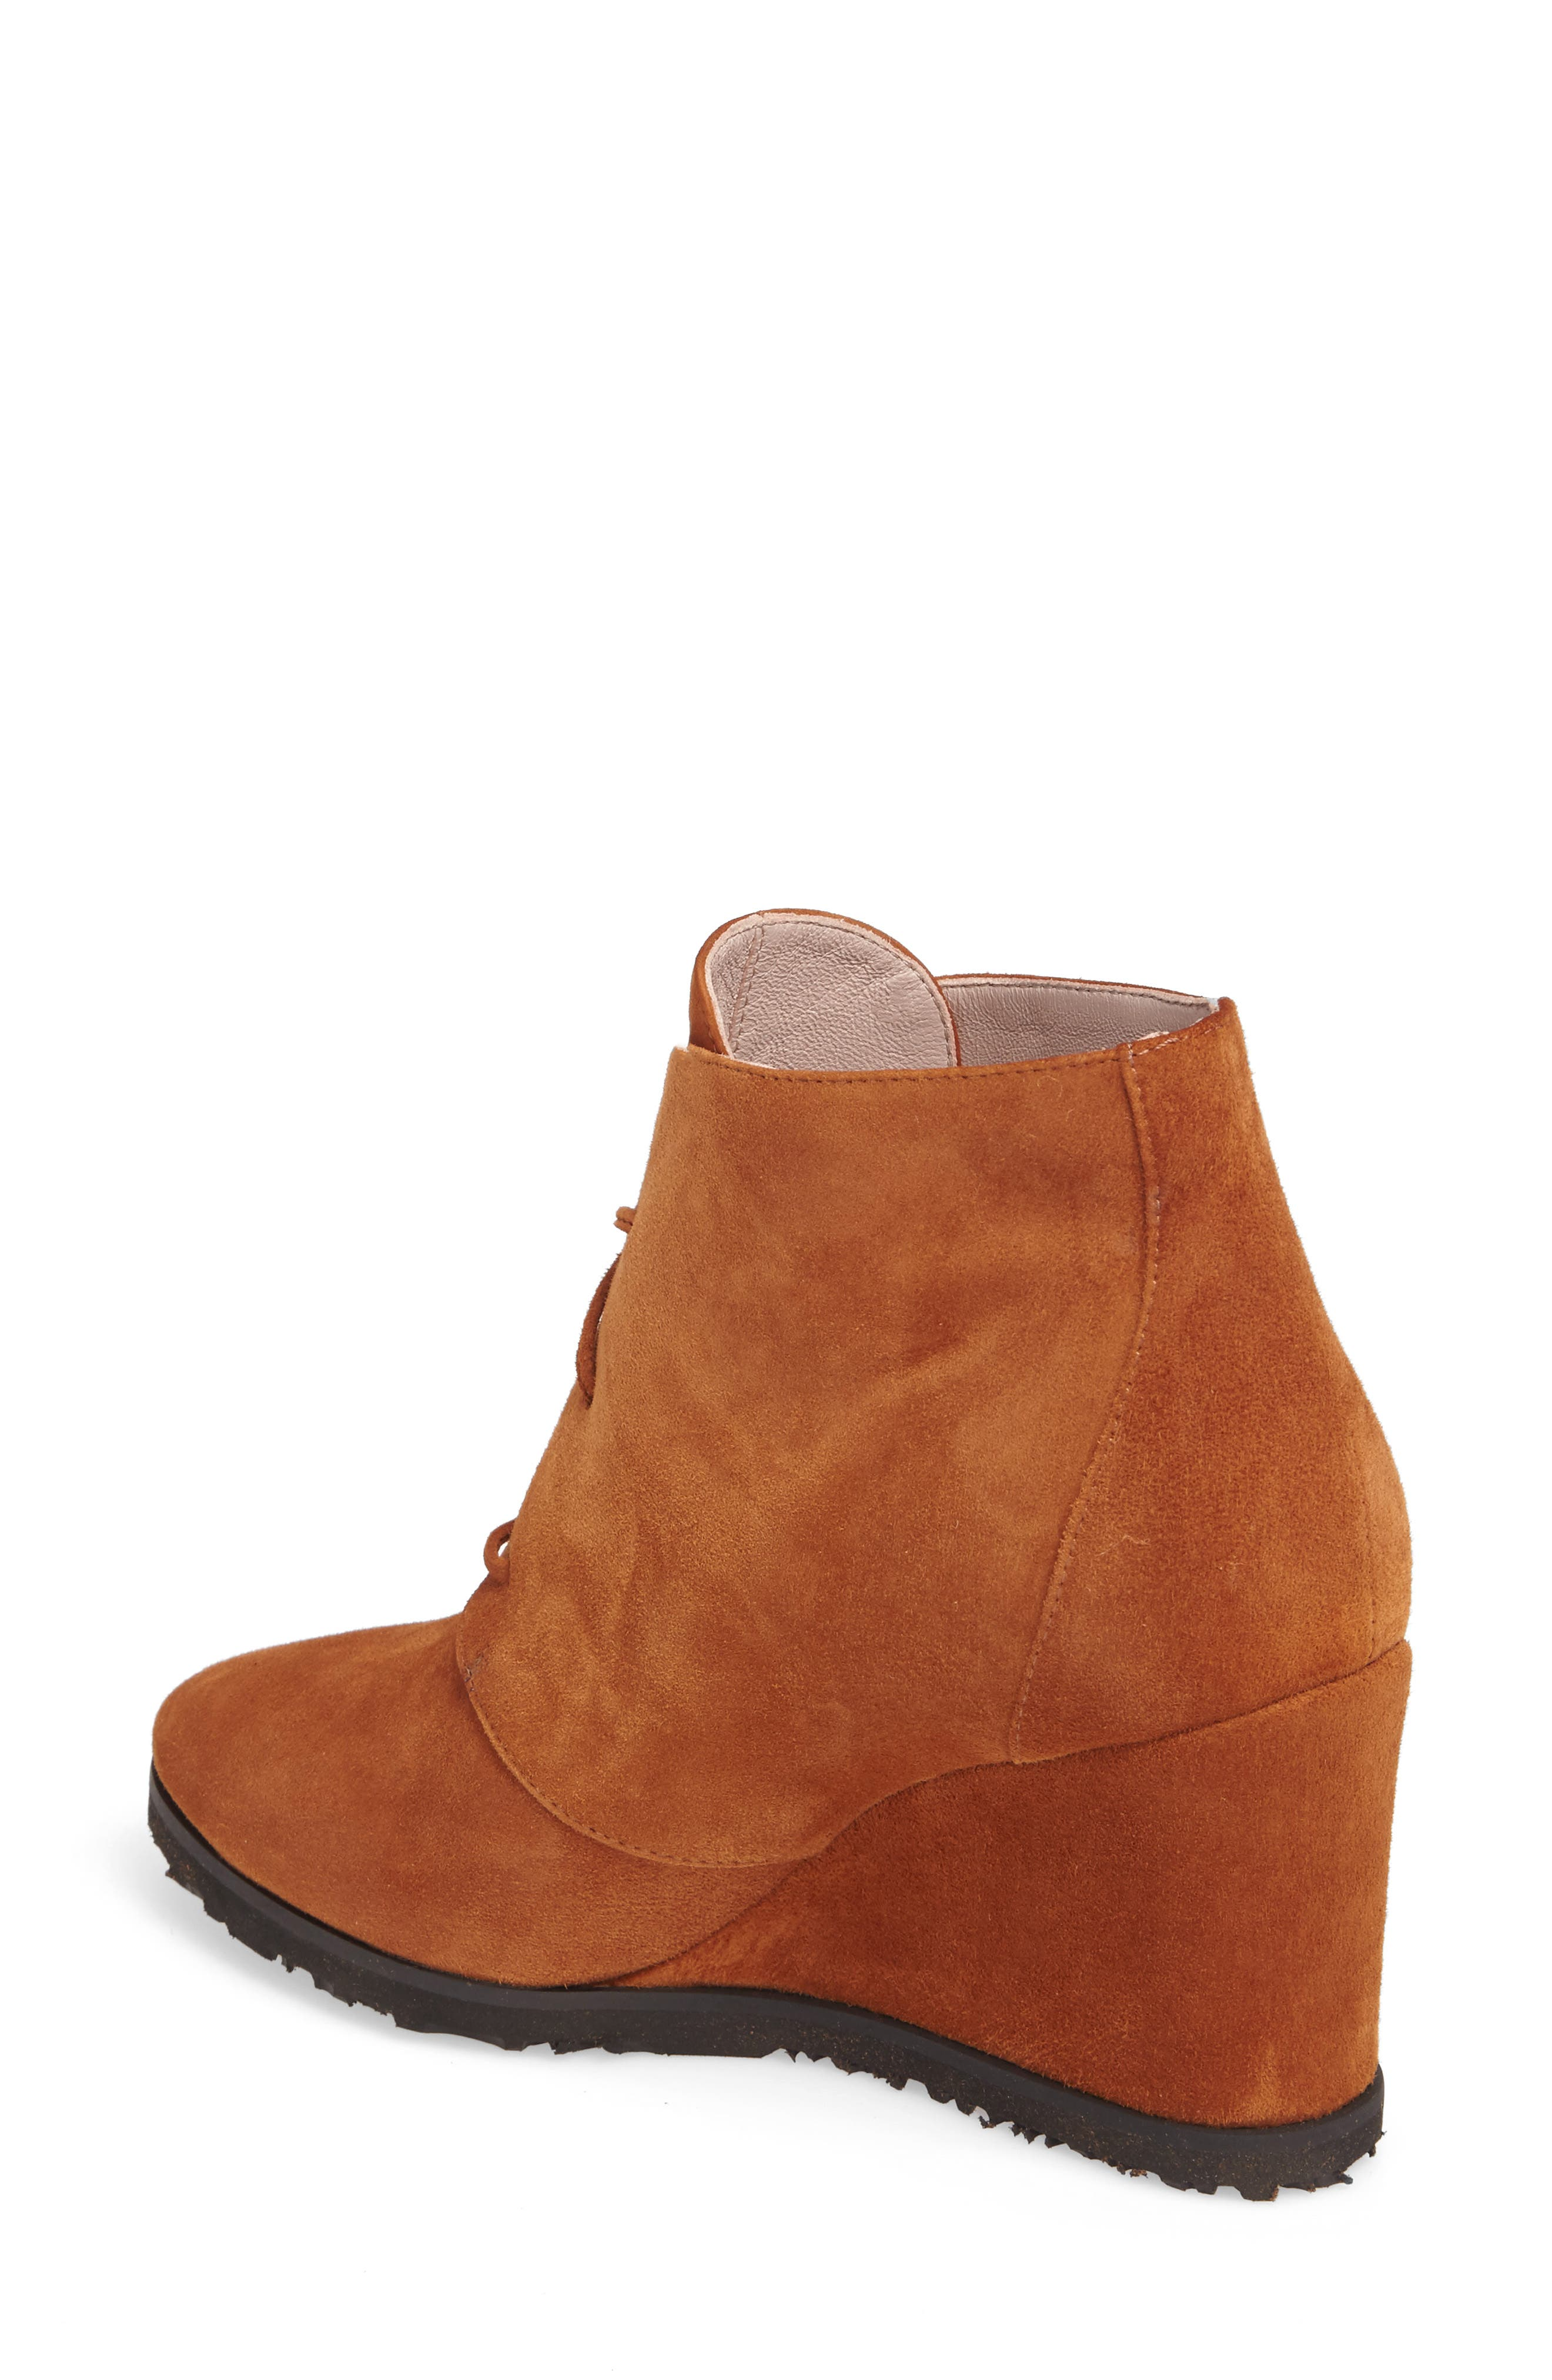 Alternate Image 2  - Taryn Rose Marta Wedge Bootie (Women)